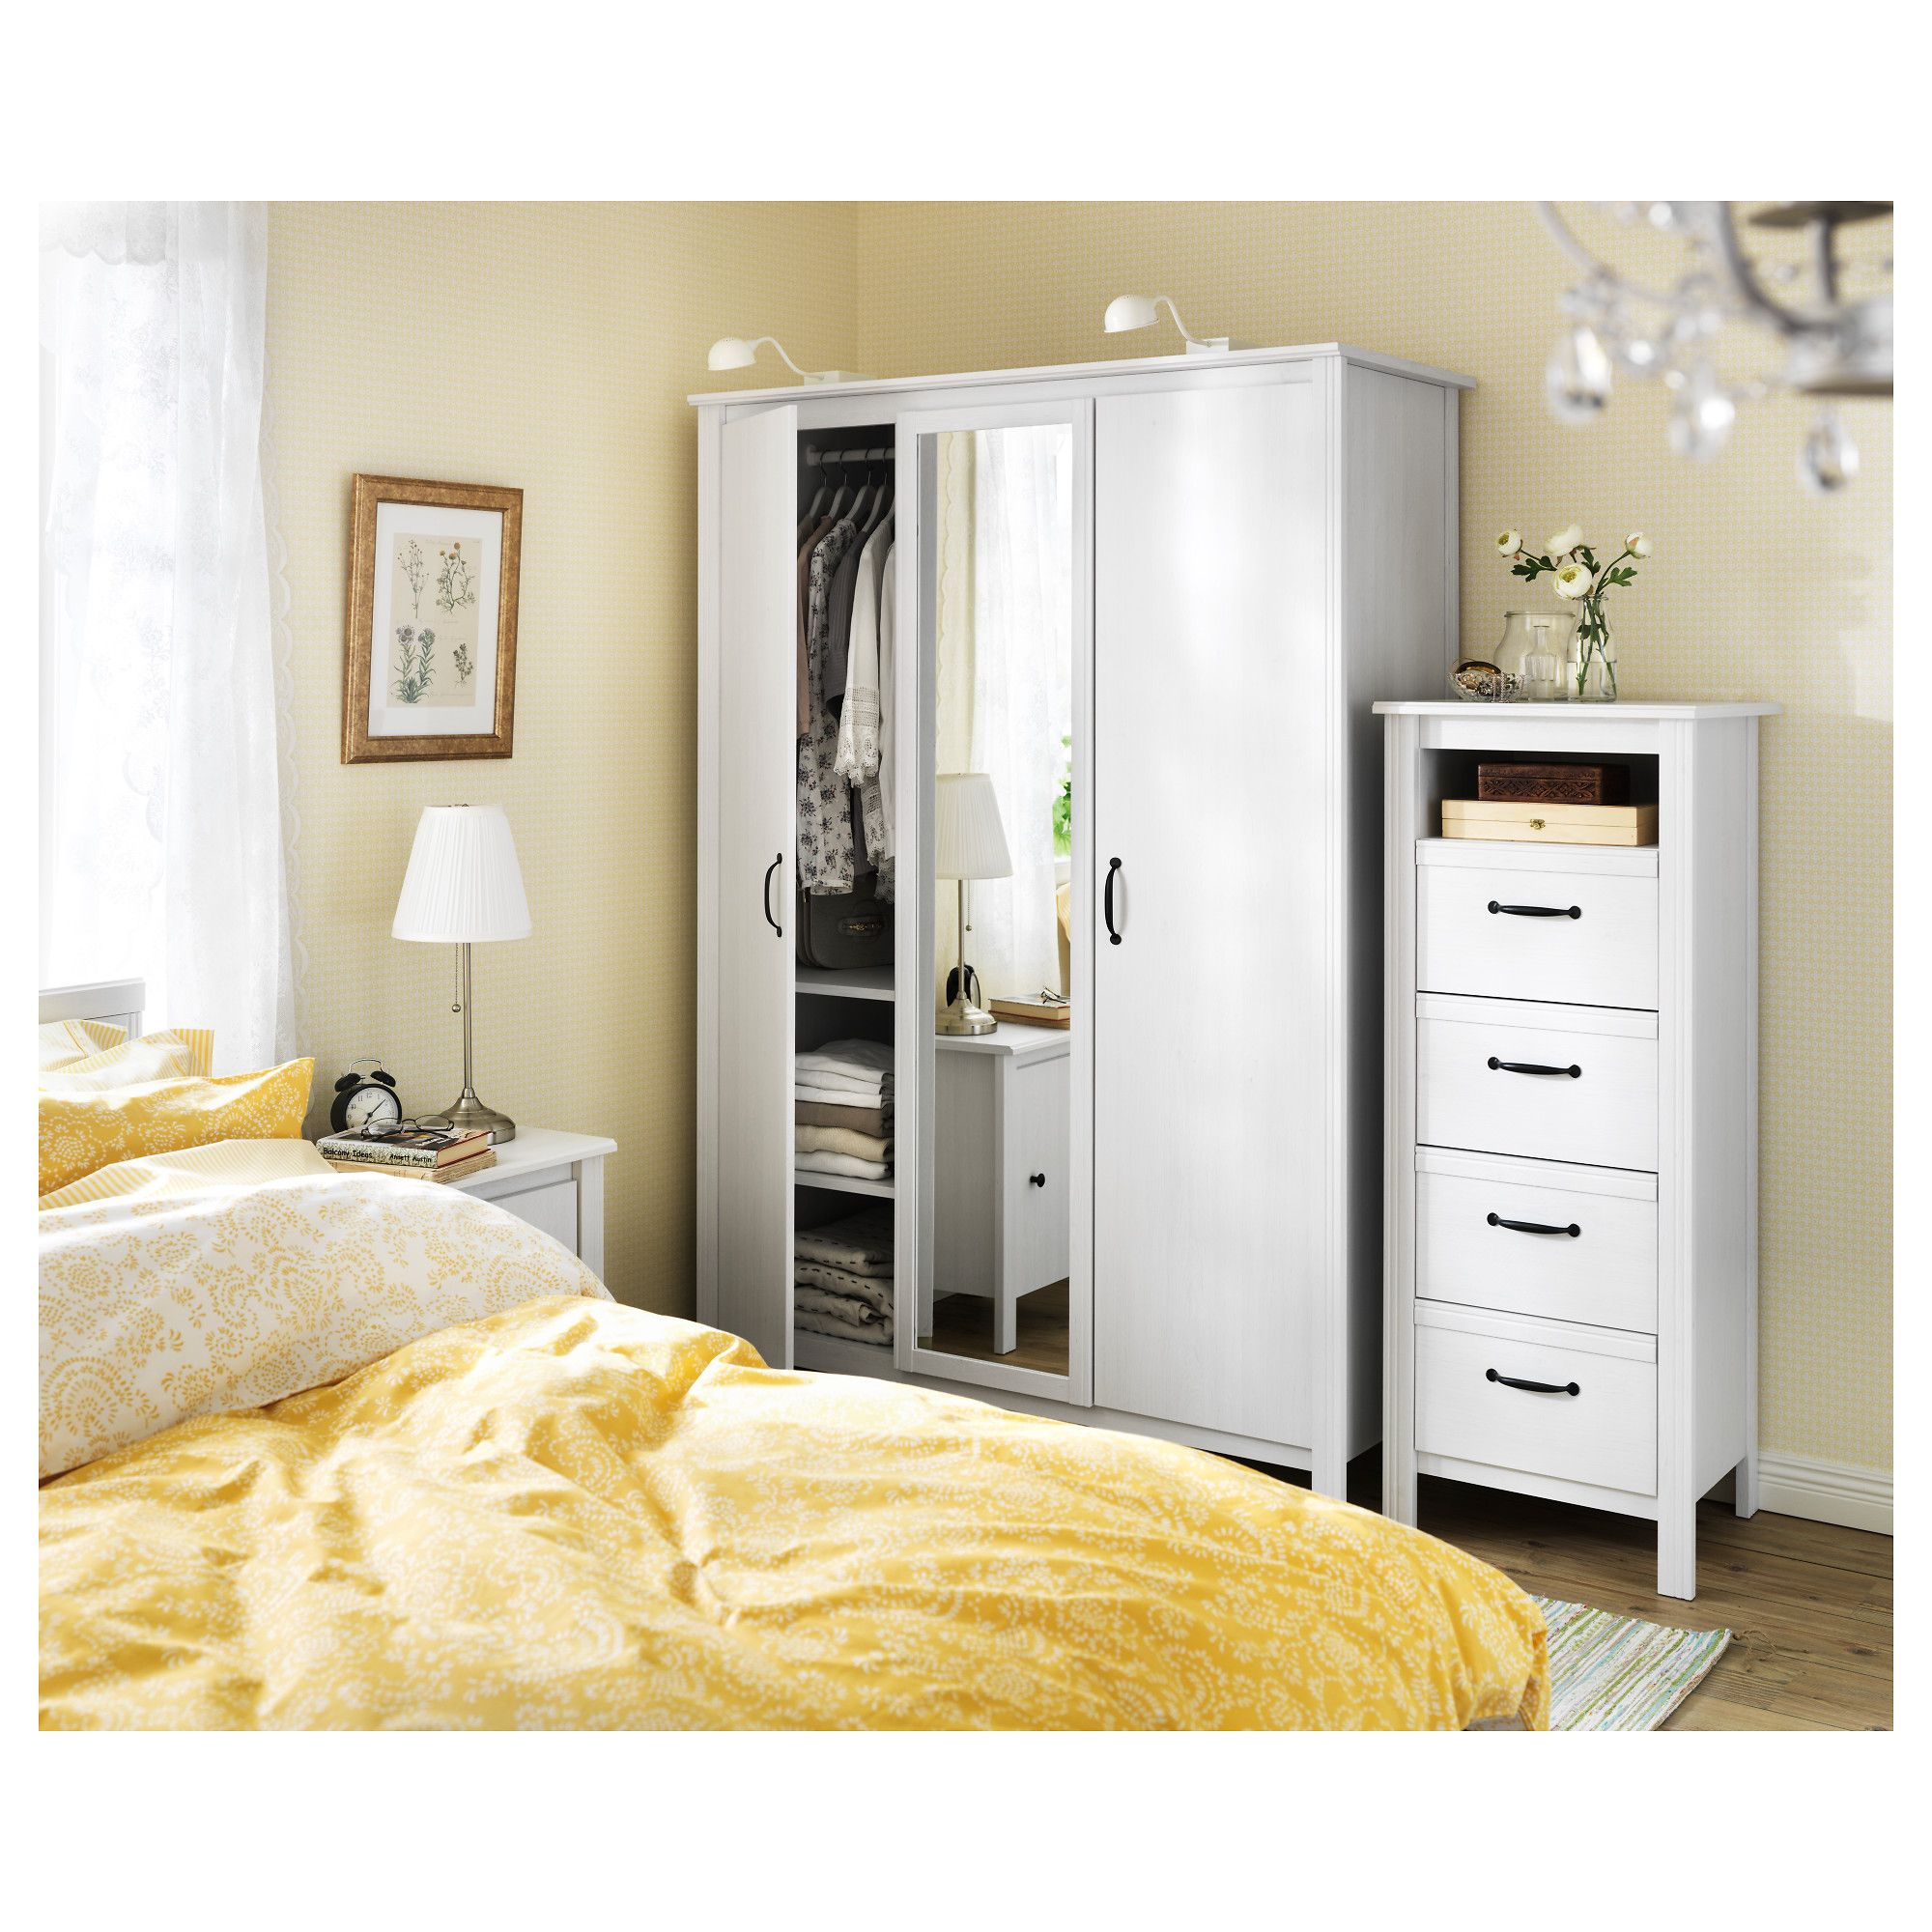 Brusali Wardrobe Furniture And Home Furnishings In 2019 Apartment Ikea Brusali